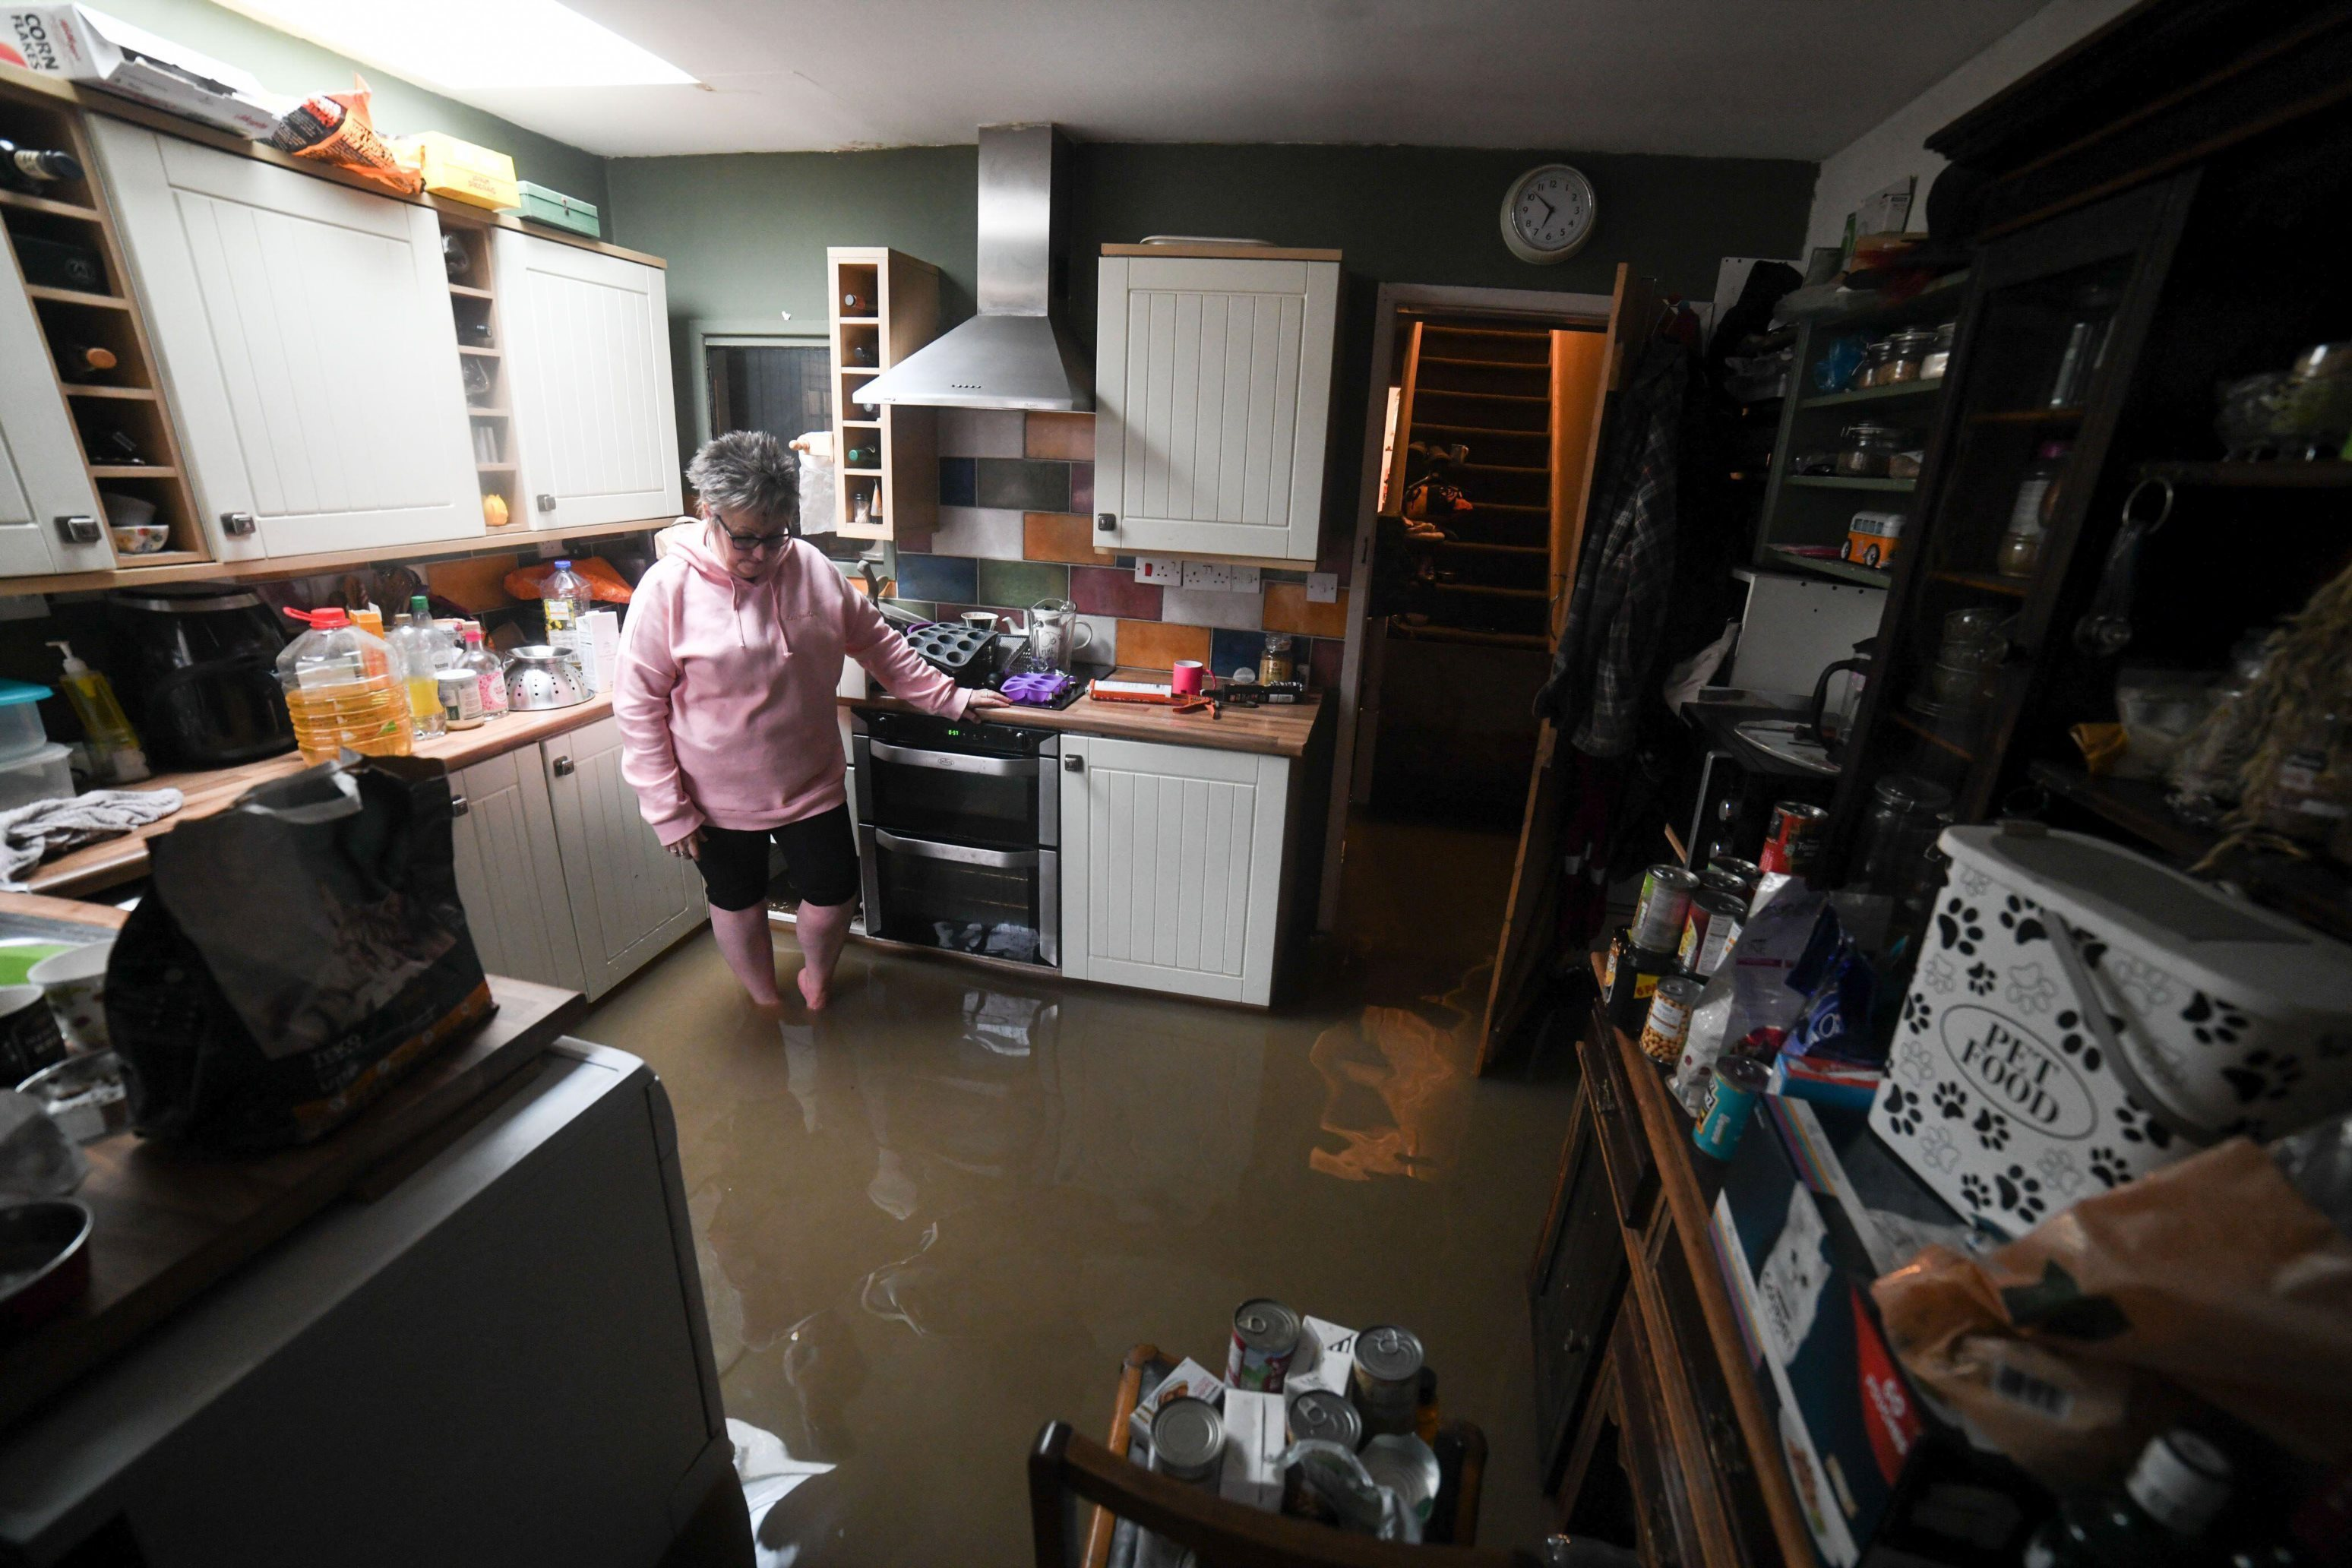 Jules Stewart's home in Canal Side in Aberdulais near Neath in South Wales, flooded after heavy rain overnight from Storm Dennis